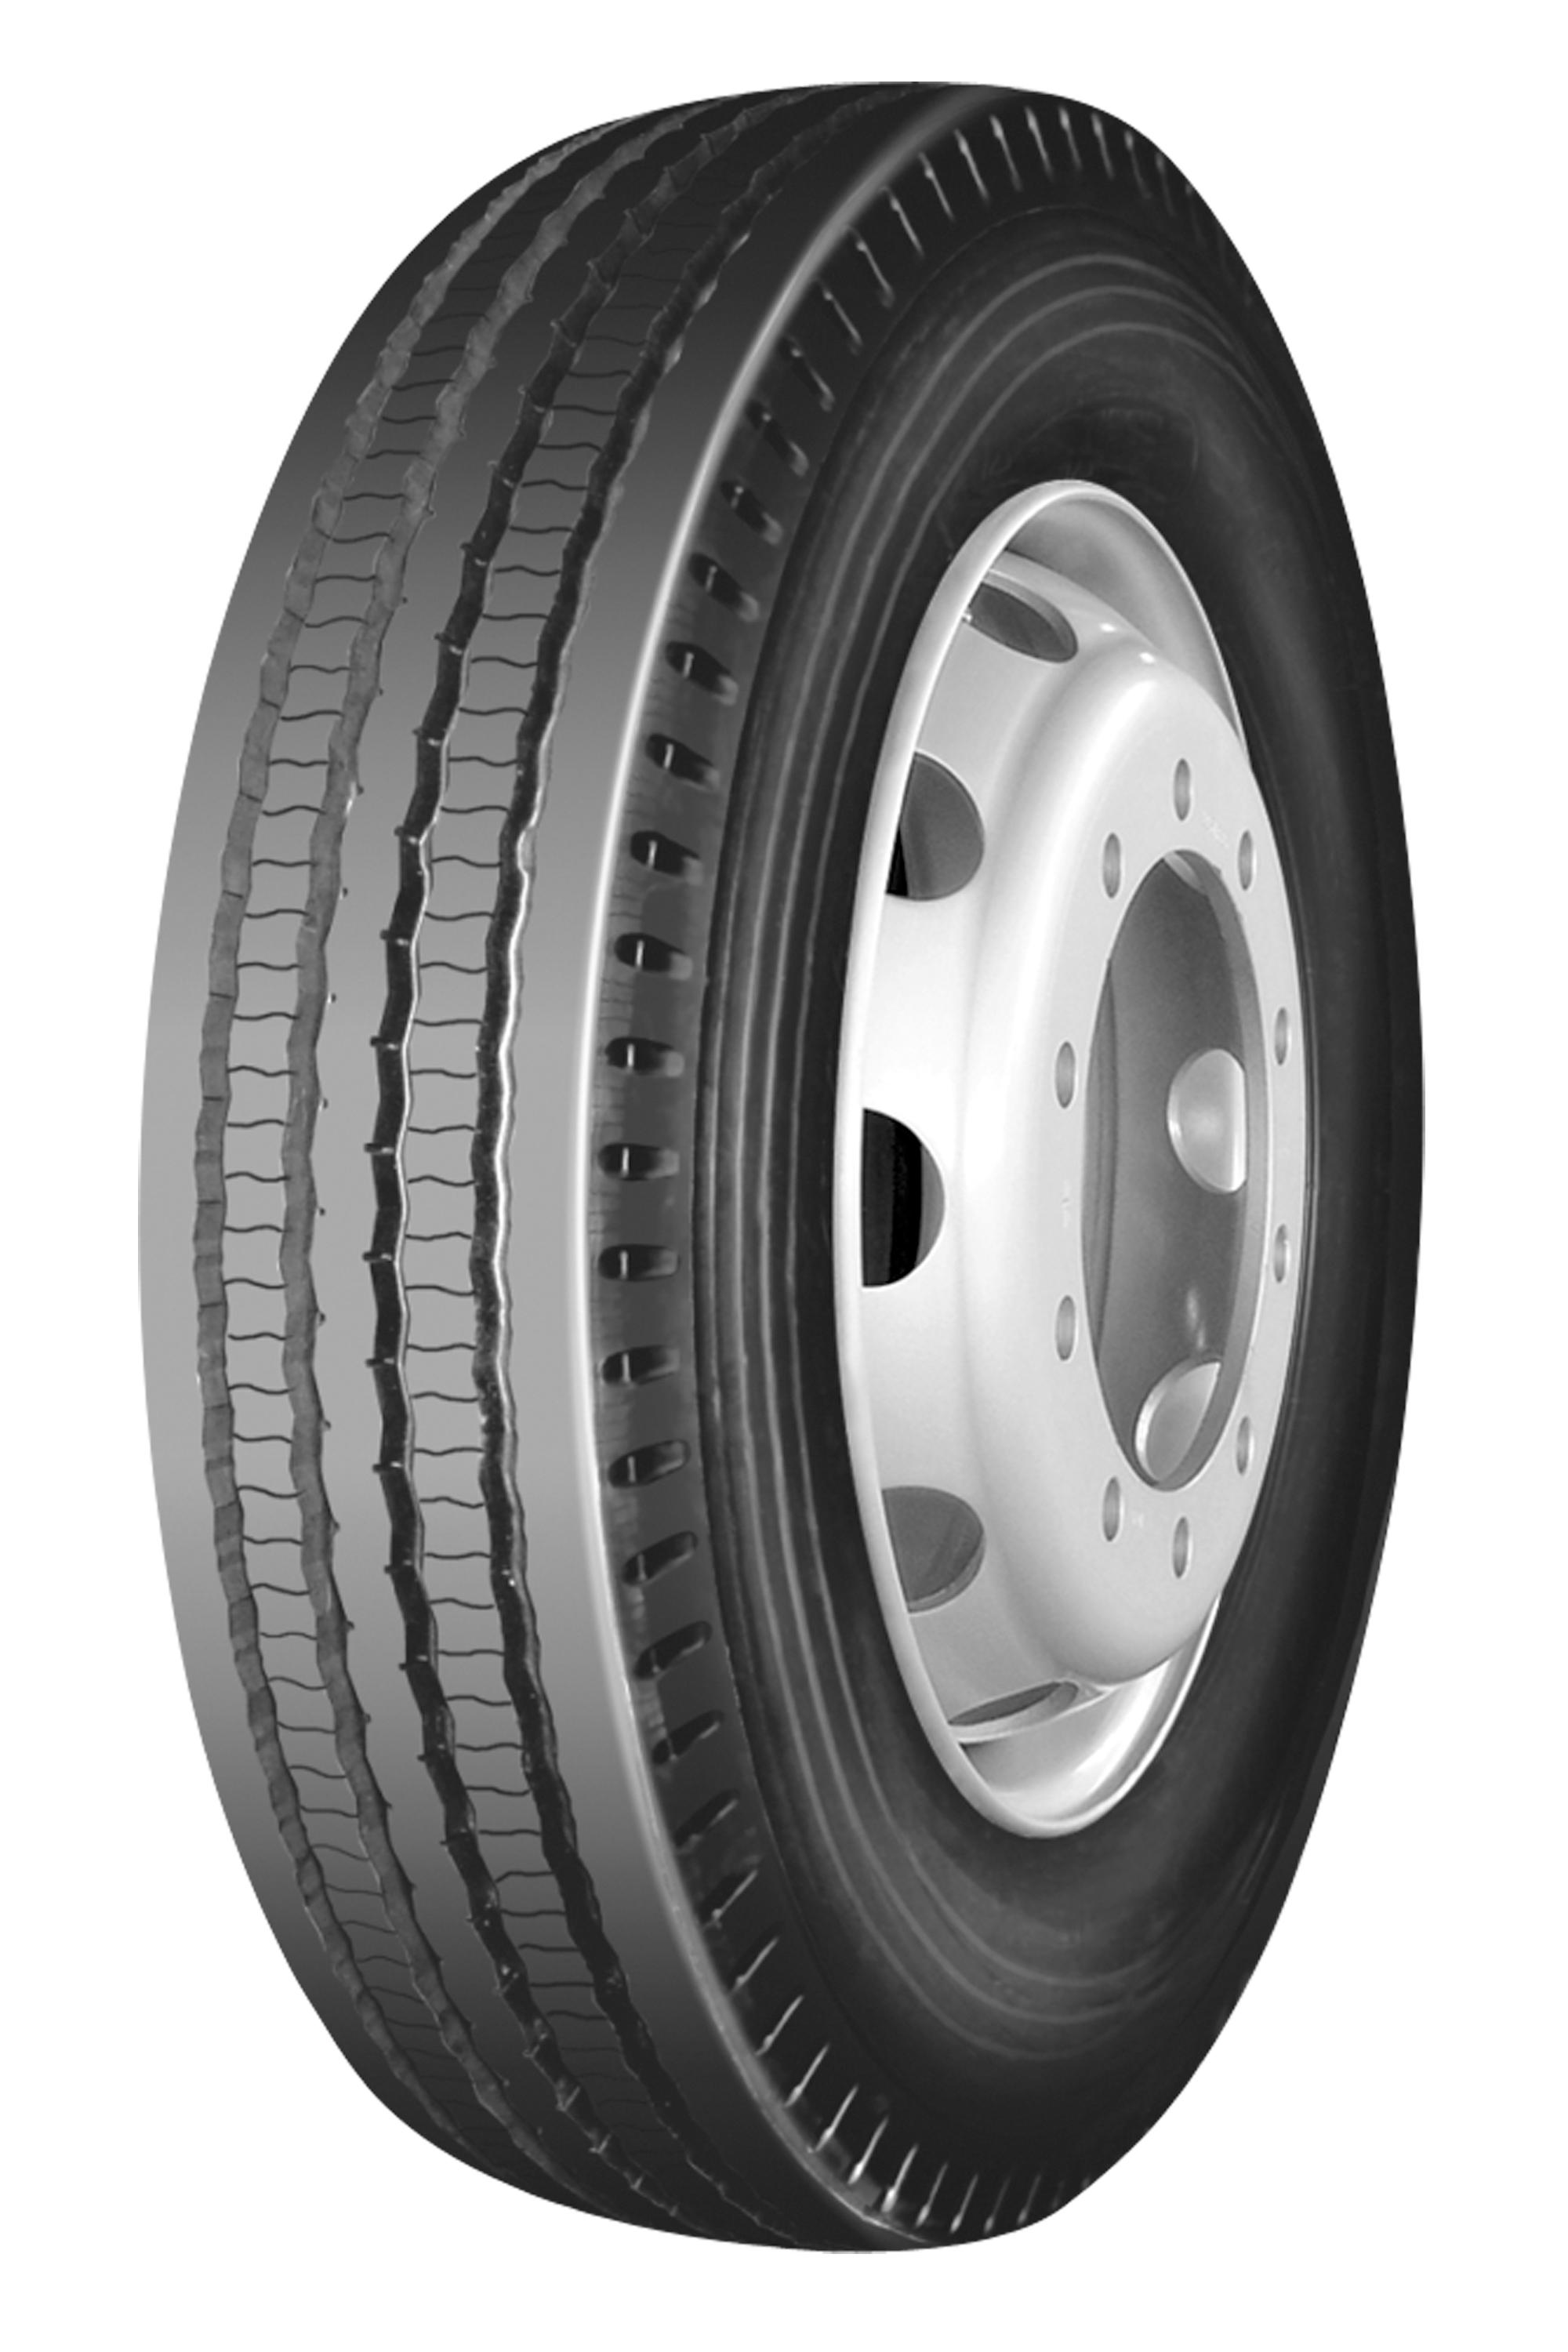 LM118 ALL STEEL RADIAL TRUCK AND BUS TYRES